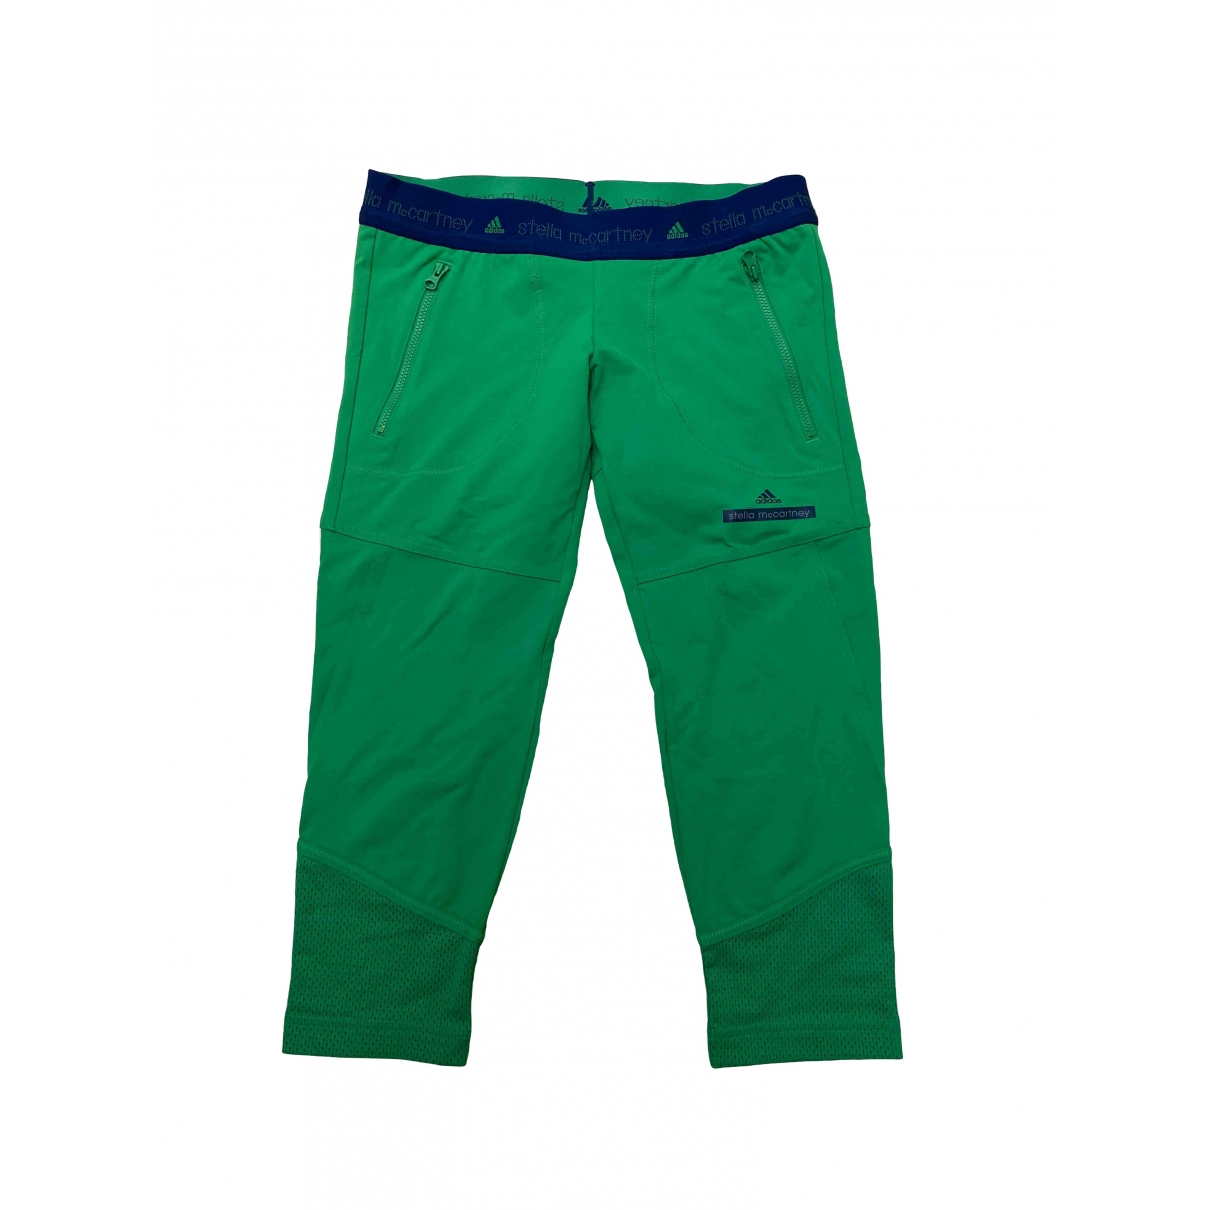 Adidas \N Green Trousers for Women S International